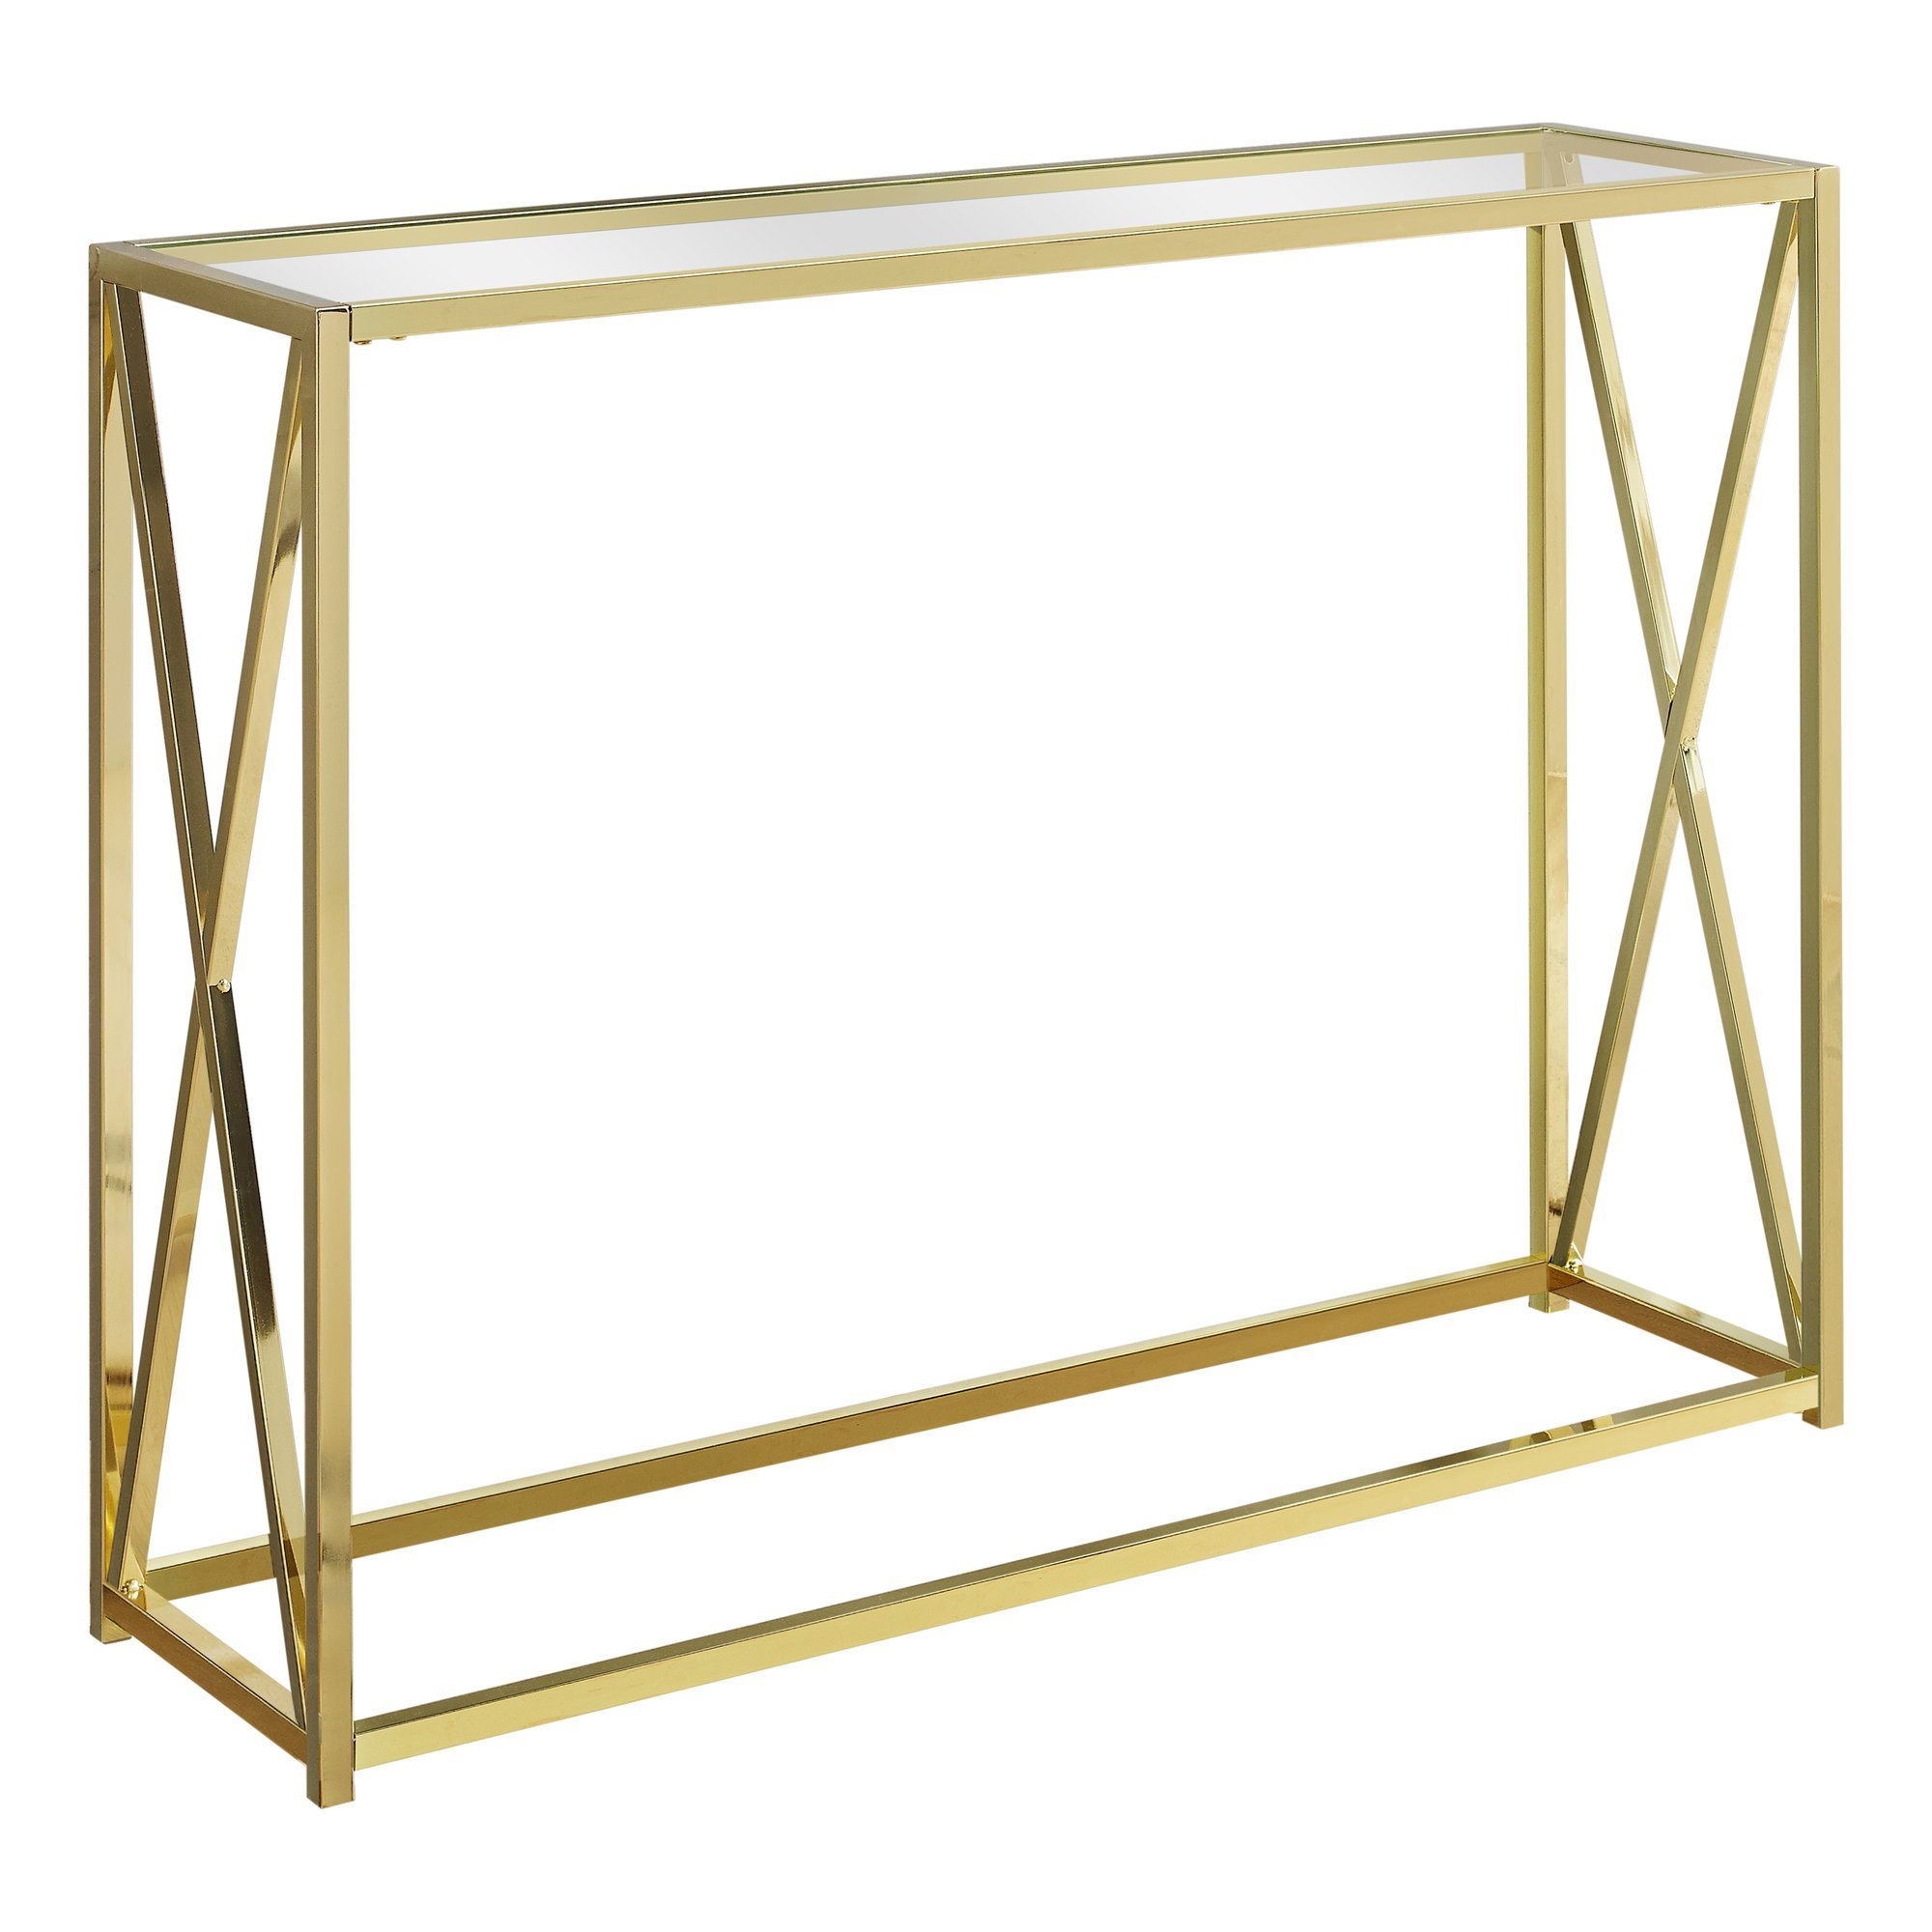 monarch metal and glass accent table gold finish gwg oak dining ashley furniture nesting tables entryway cabinet pottery barn farmhouse bedside coffee end french beds floor mirror